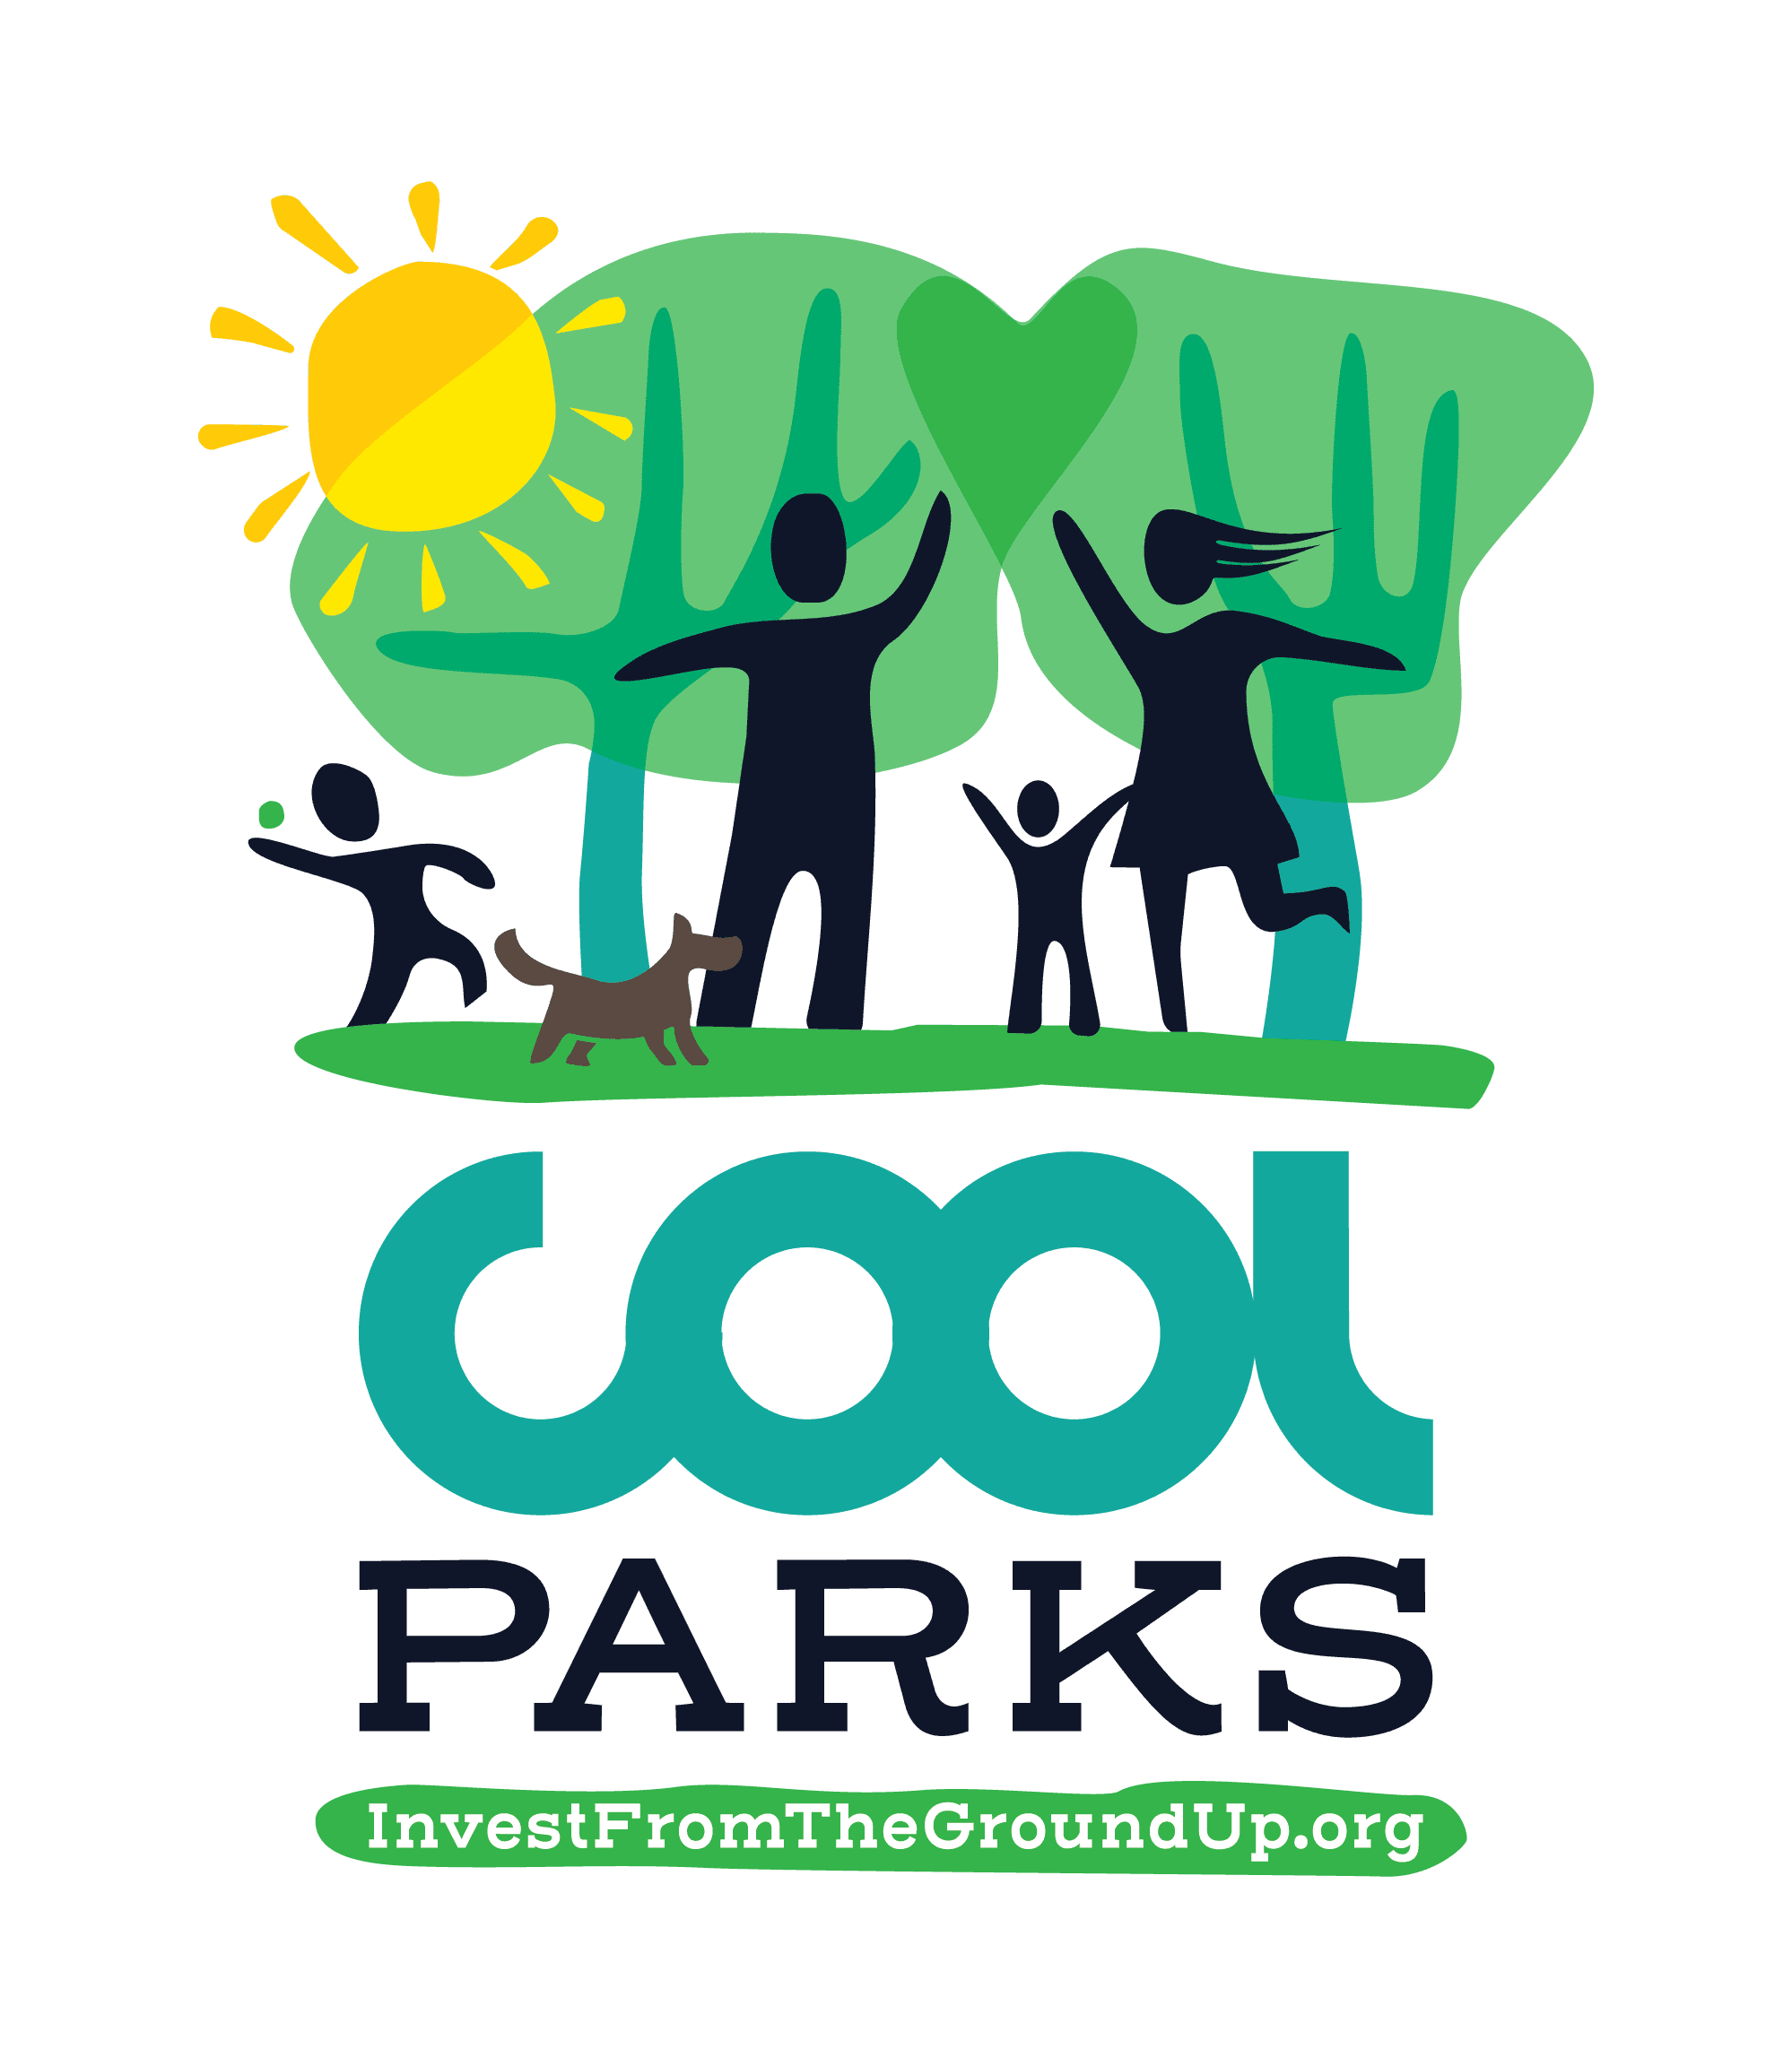 CoolParks-Color